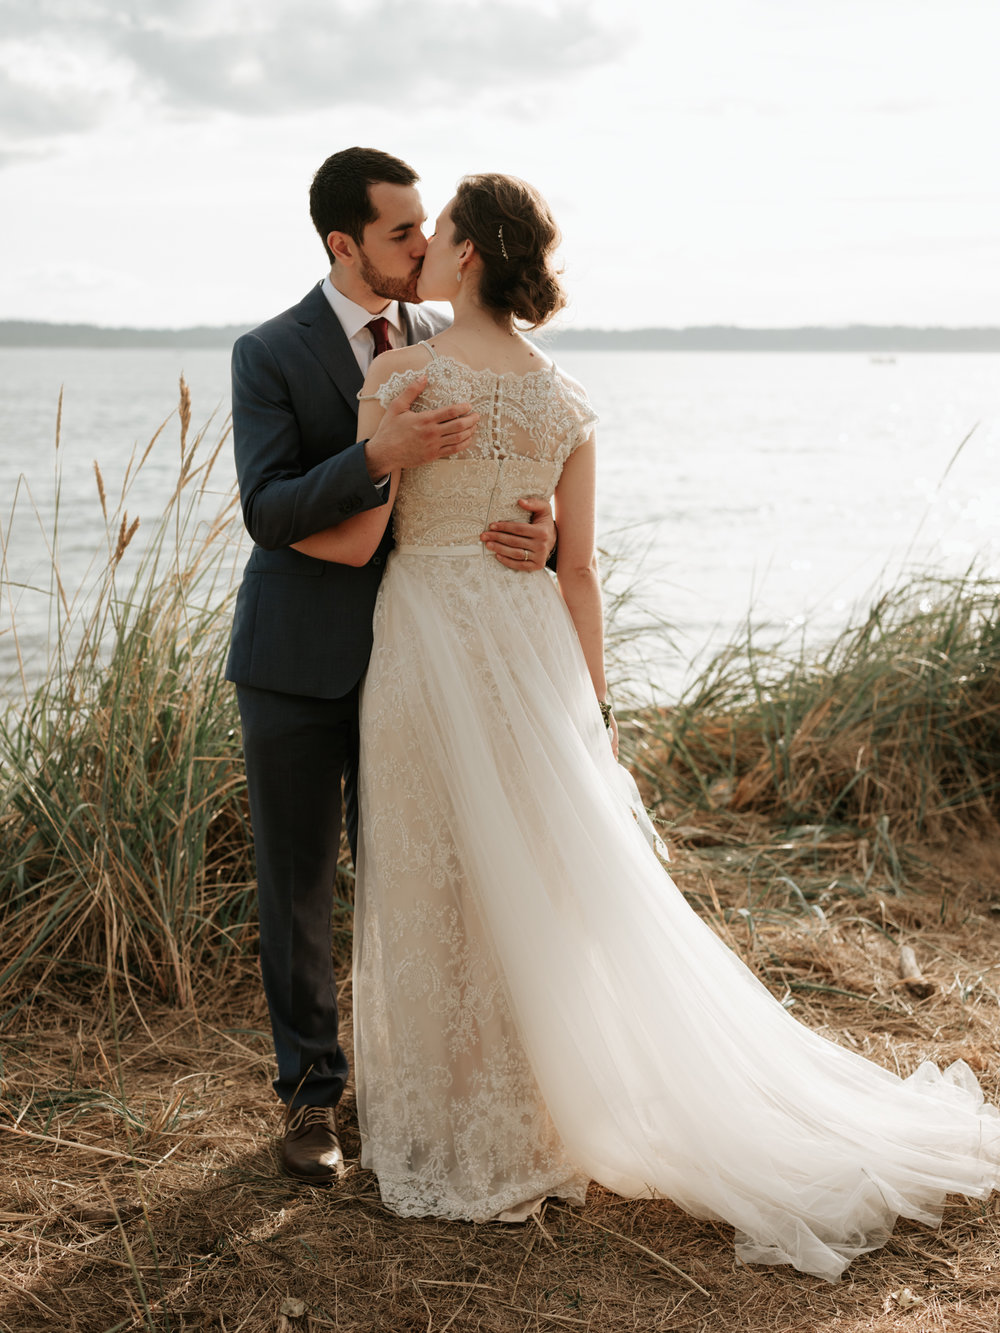 Stolen Glimpses Seattle Wedding Photographer at Discovery Park55.jpg